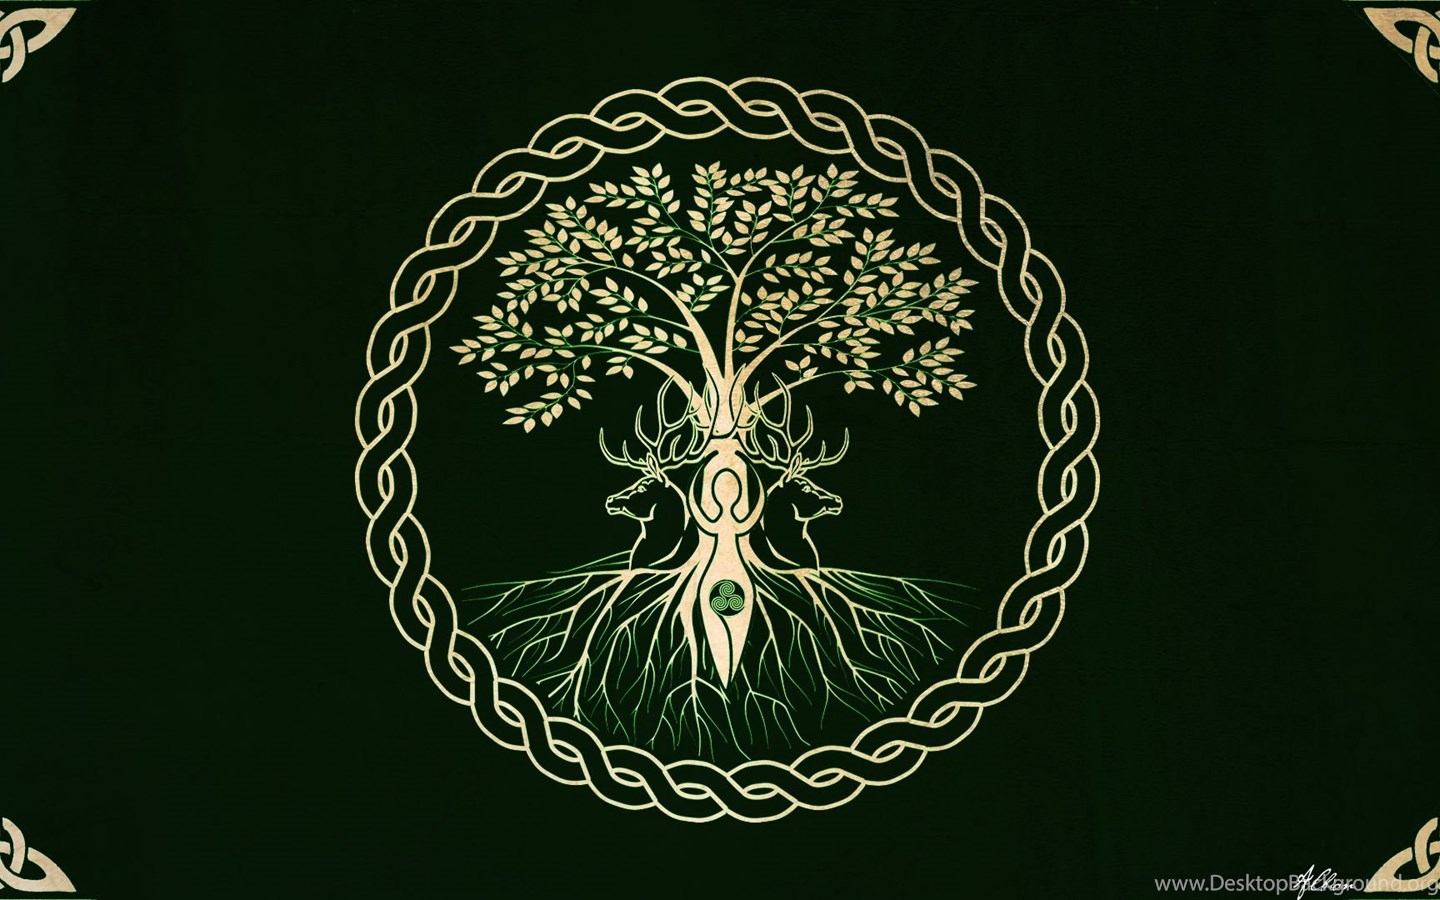 Pagan Wallpaper For Android: The Tree Wallpapers Version By The Pagan Gallery On